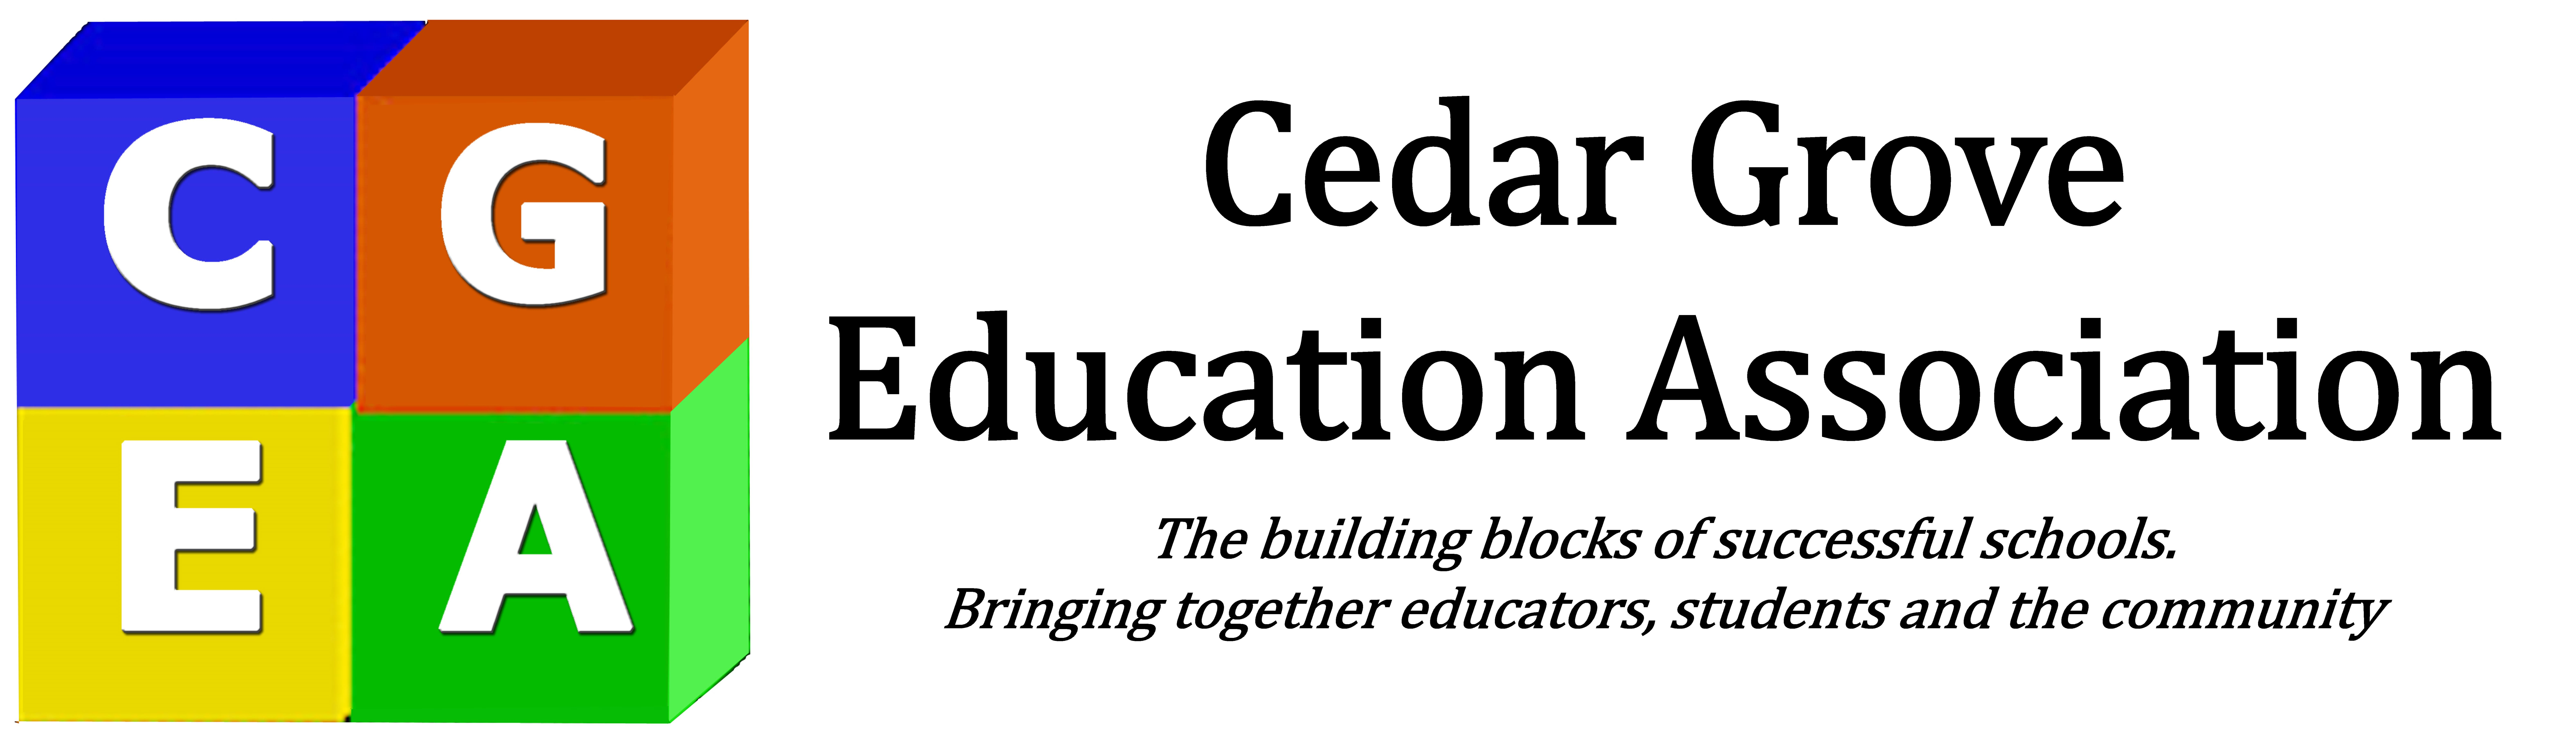 Cedar Grove Education Association